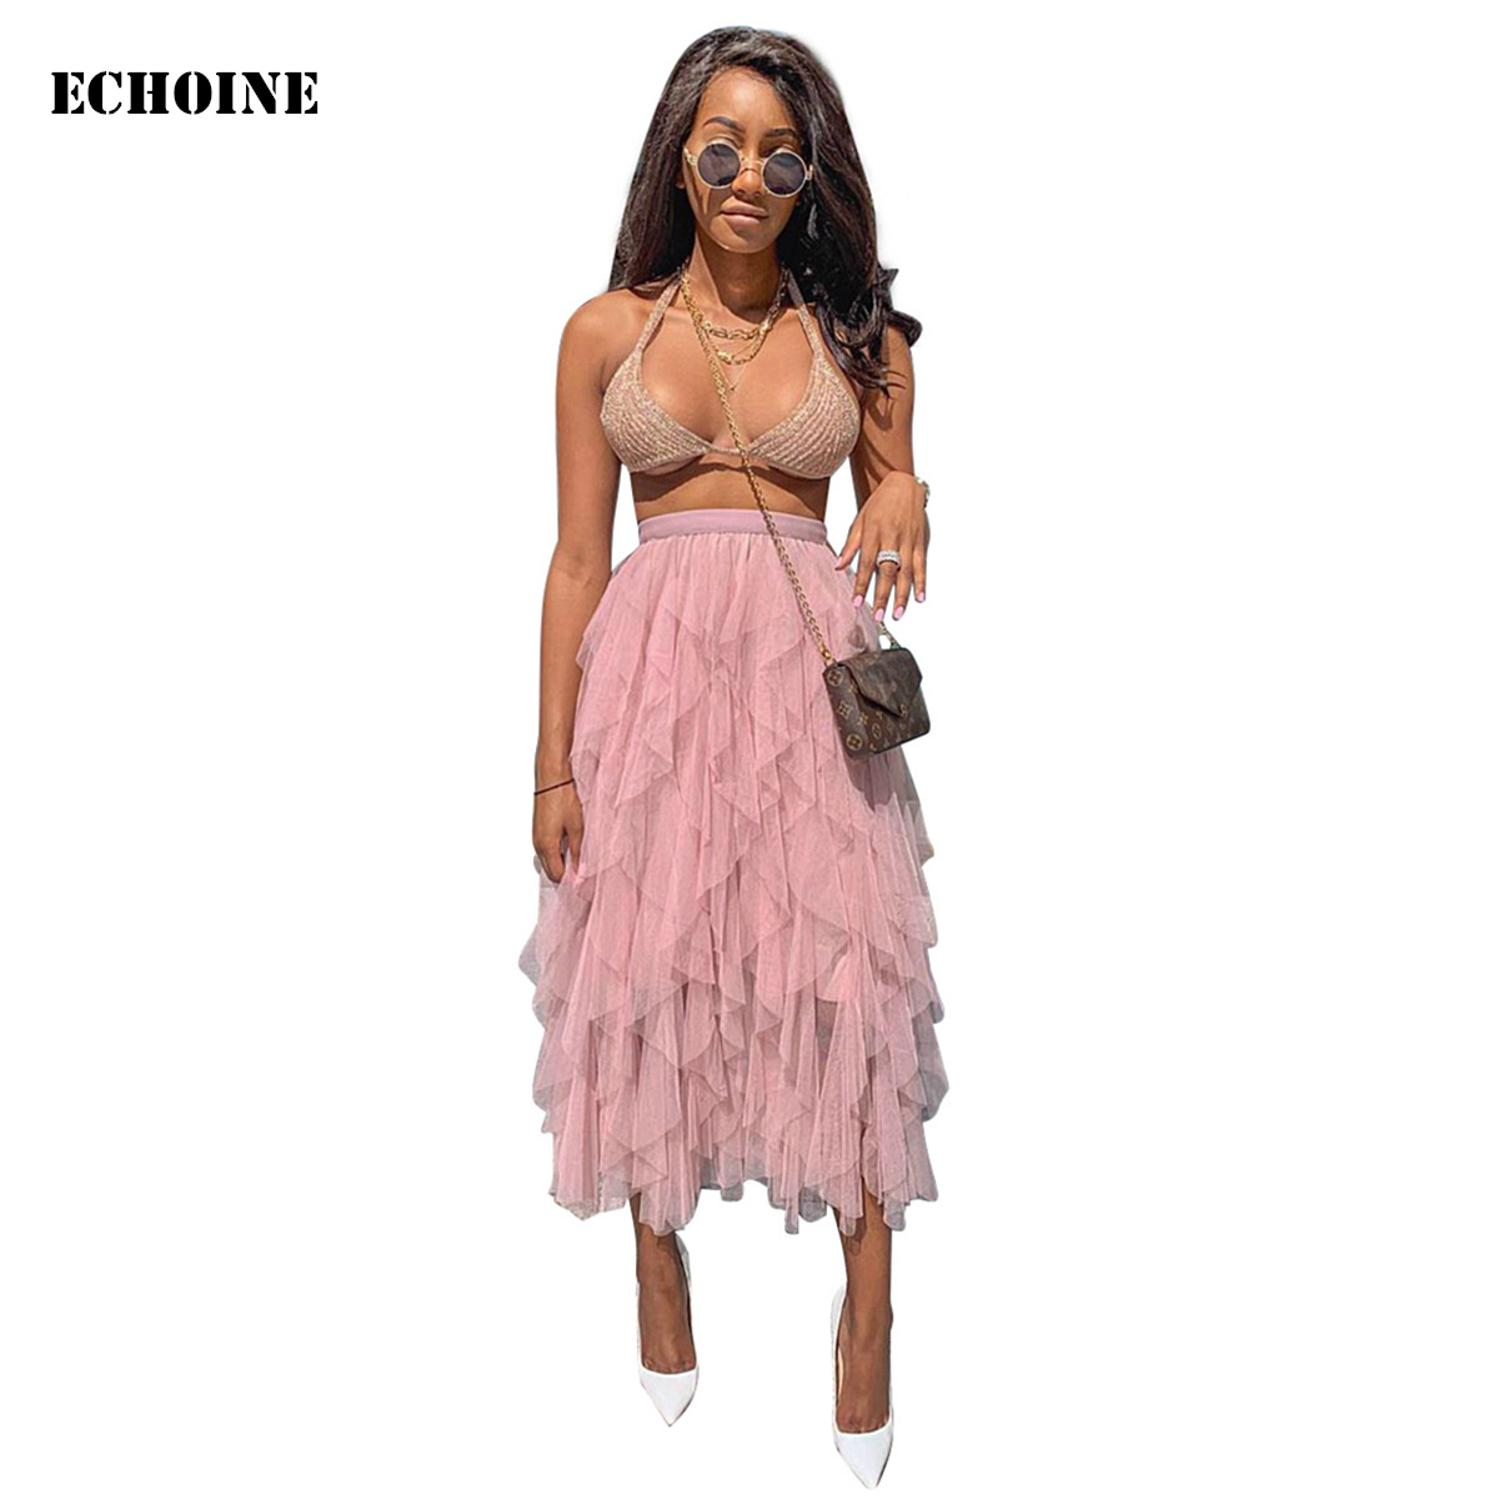 Echoine Tutu Tulle Skirt Women Long Maxi Pleated Ruffle Lace Sheer Mesh Elastic High Waist